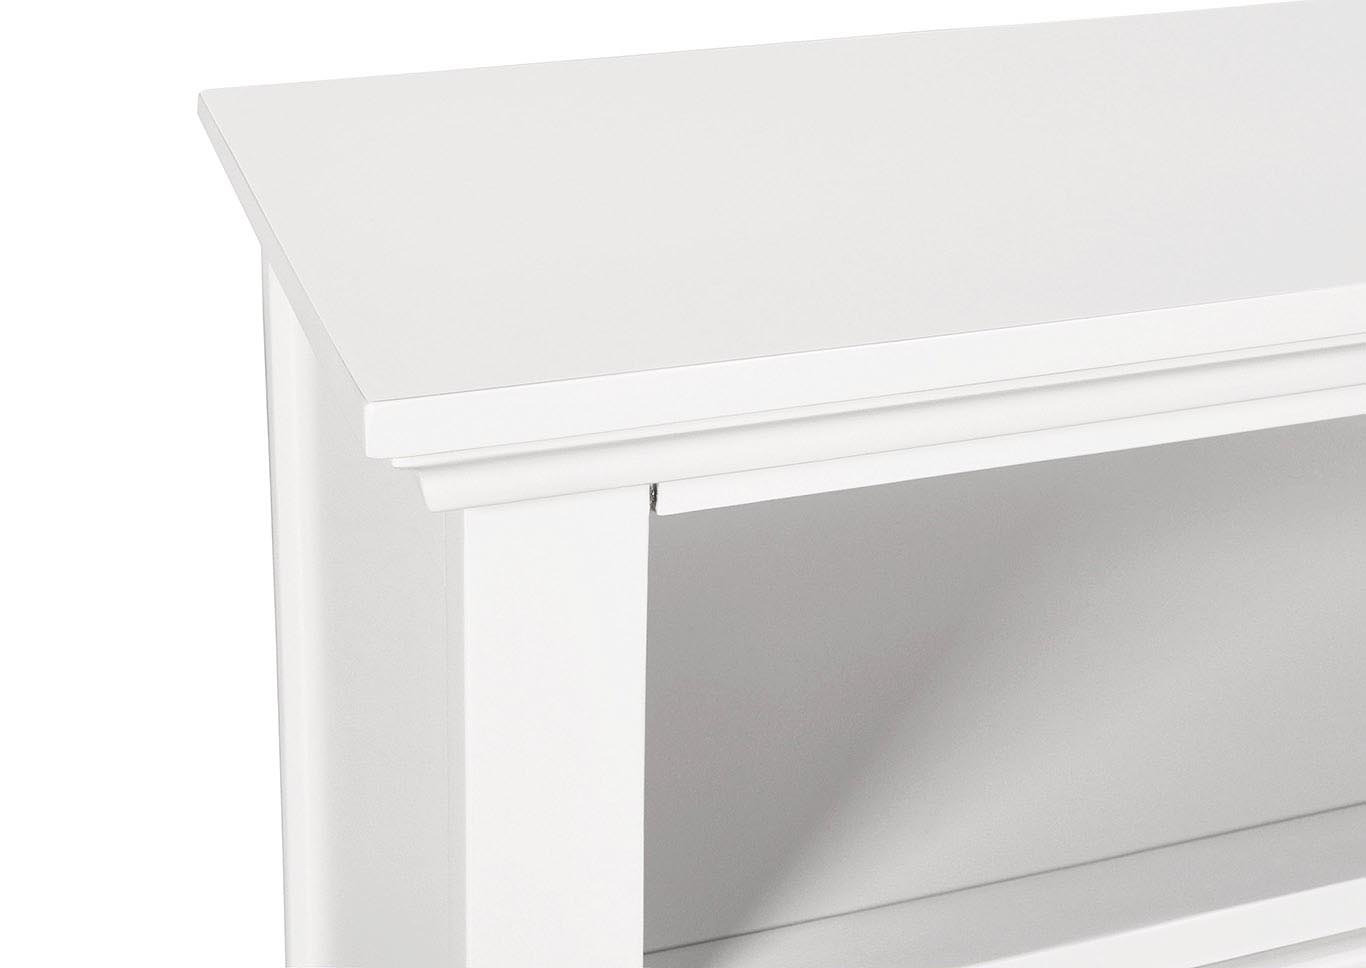 TAMARACK WHITE MEDIA CHEST,New Classic